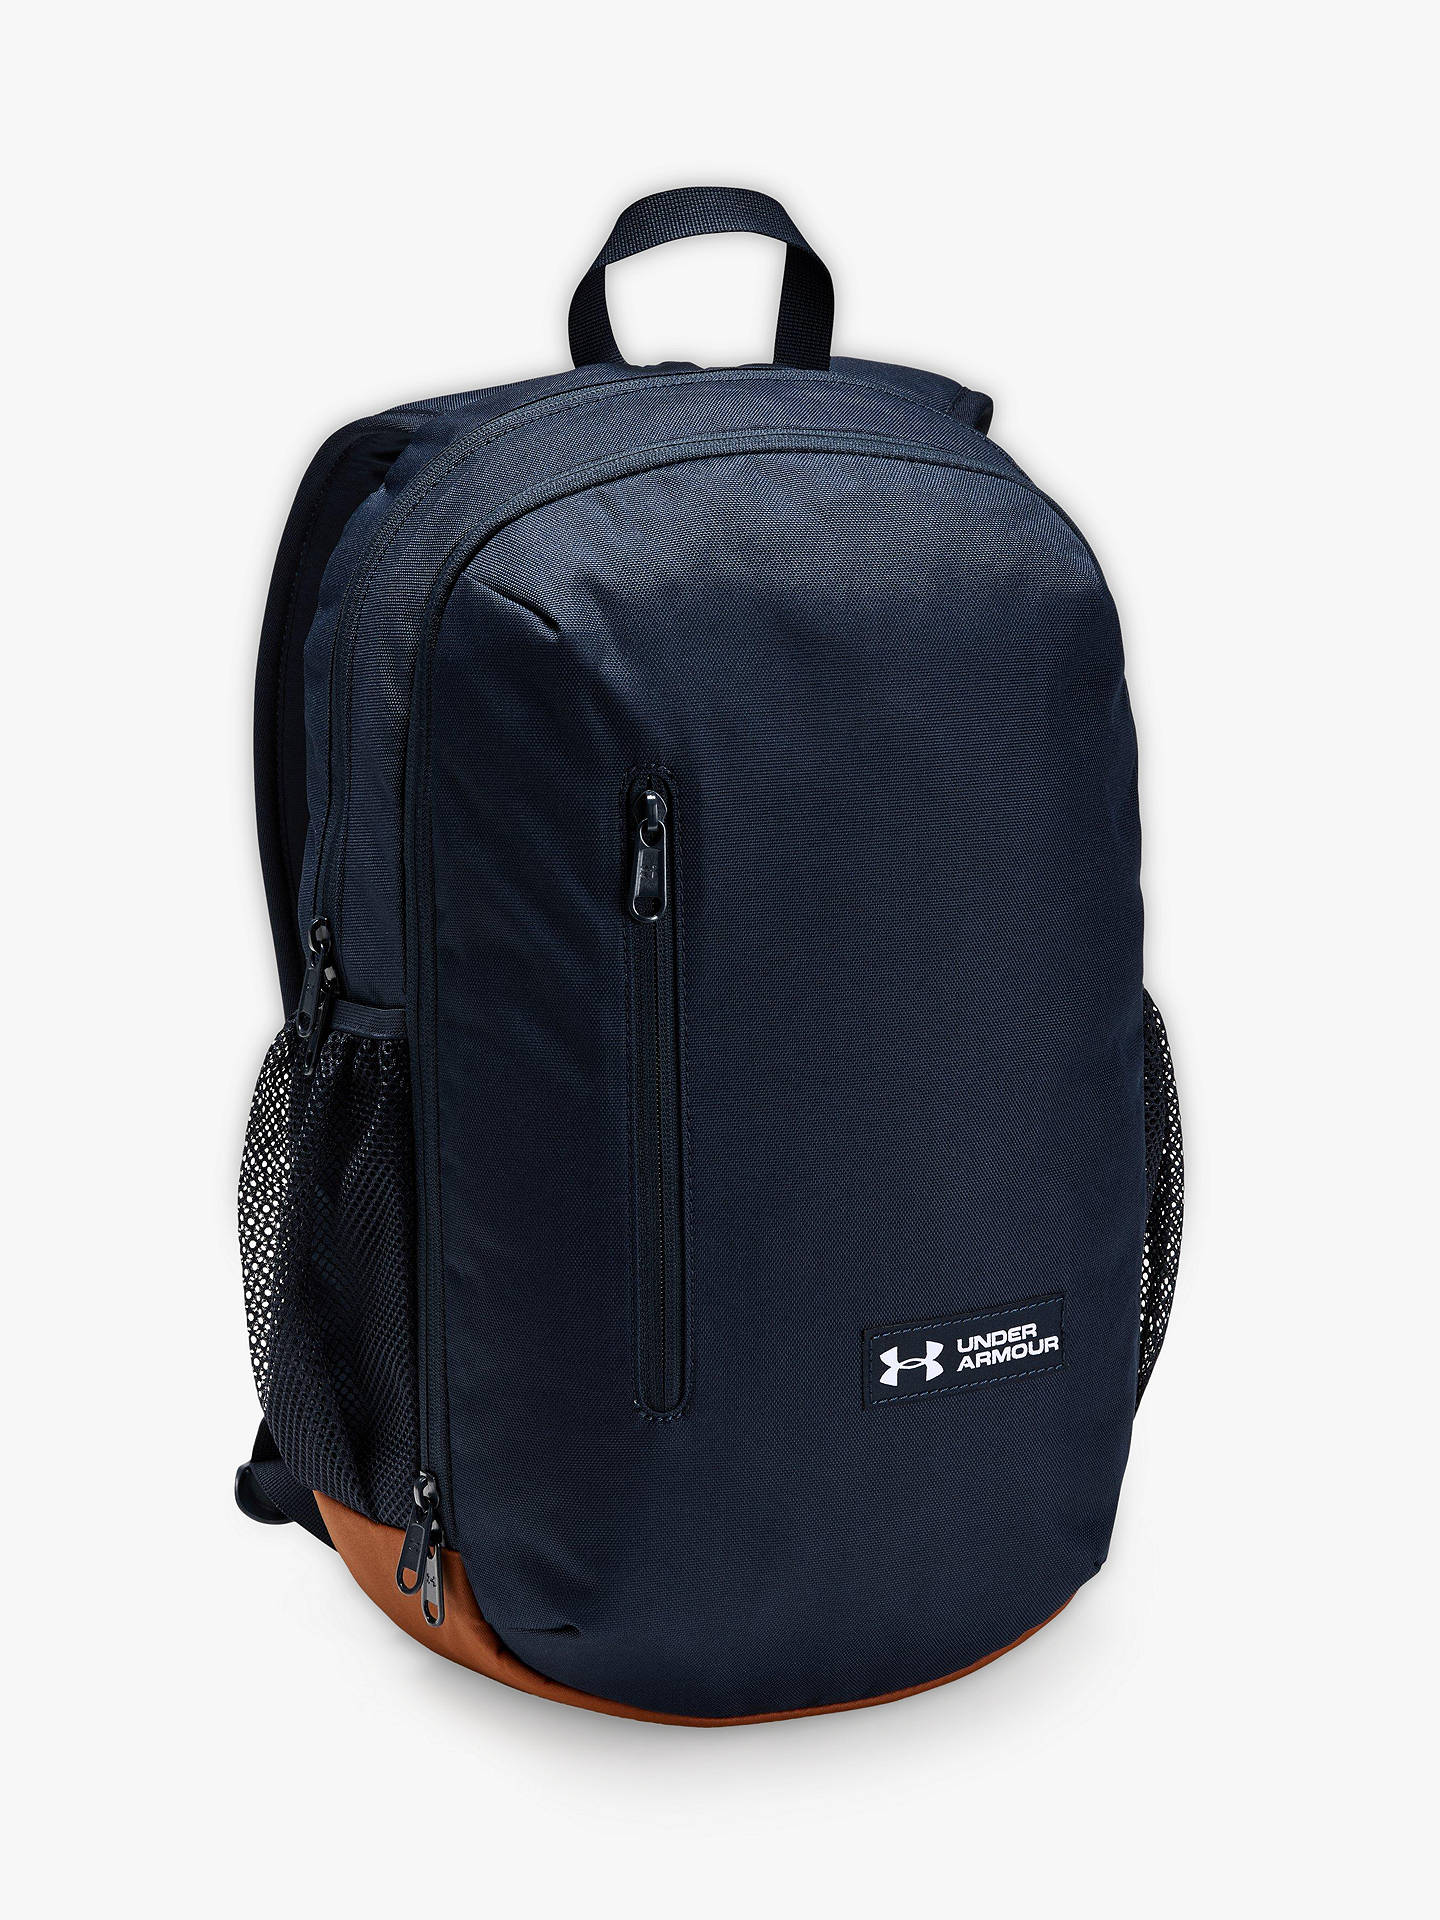 2fe82447daa Buy Under Armour Roland Backpack, Navy Online at johnlewis.com ...